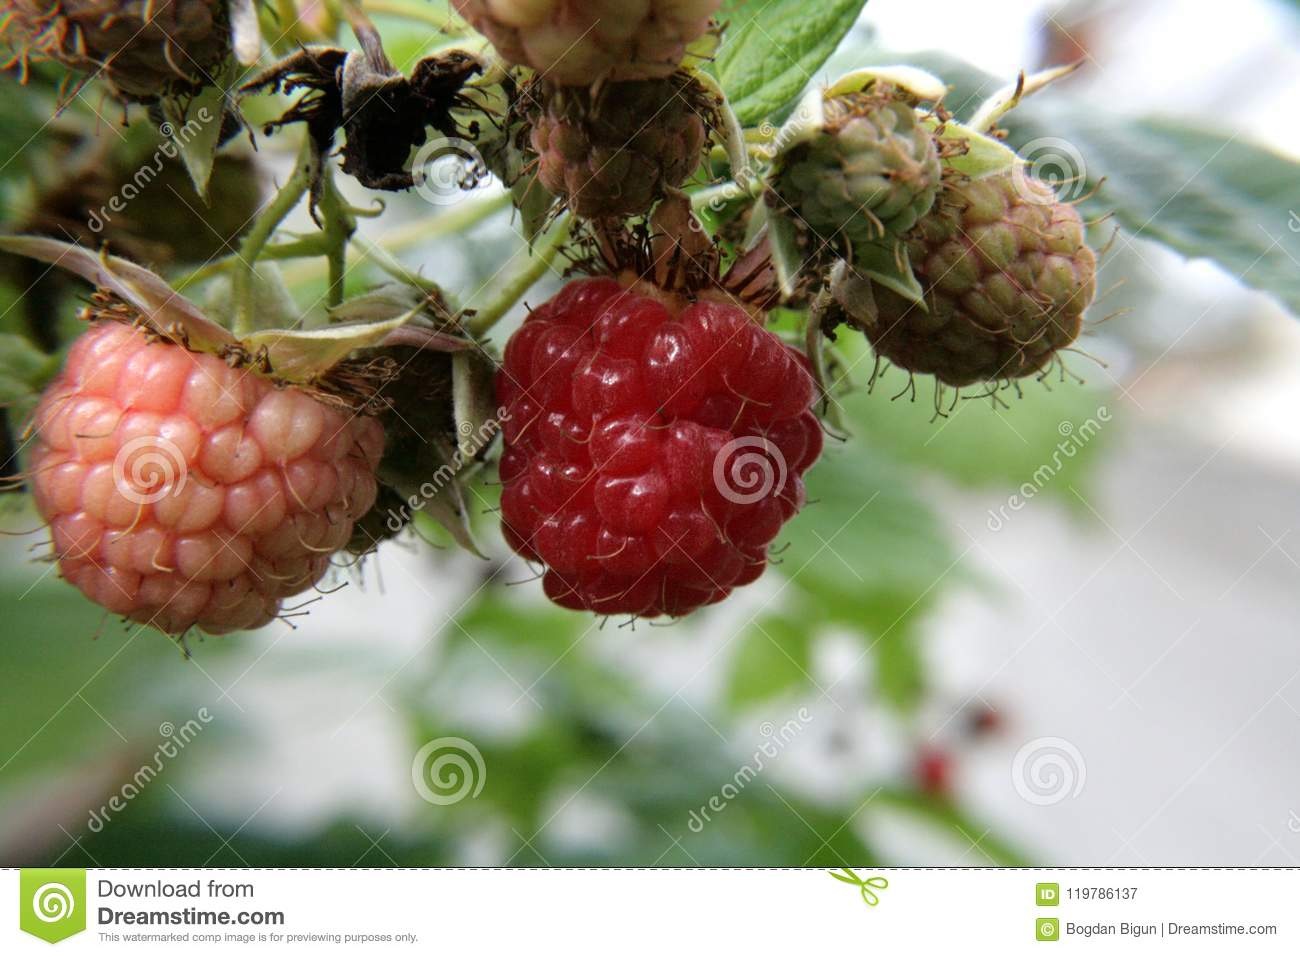 Raspberry Berry In The Garden Stock Image - Image of similar